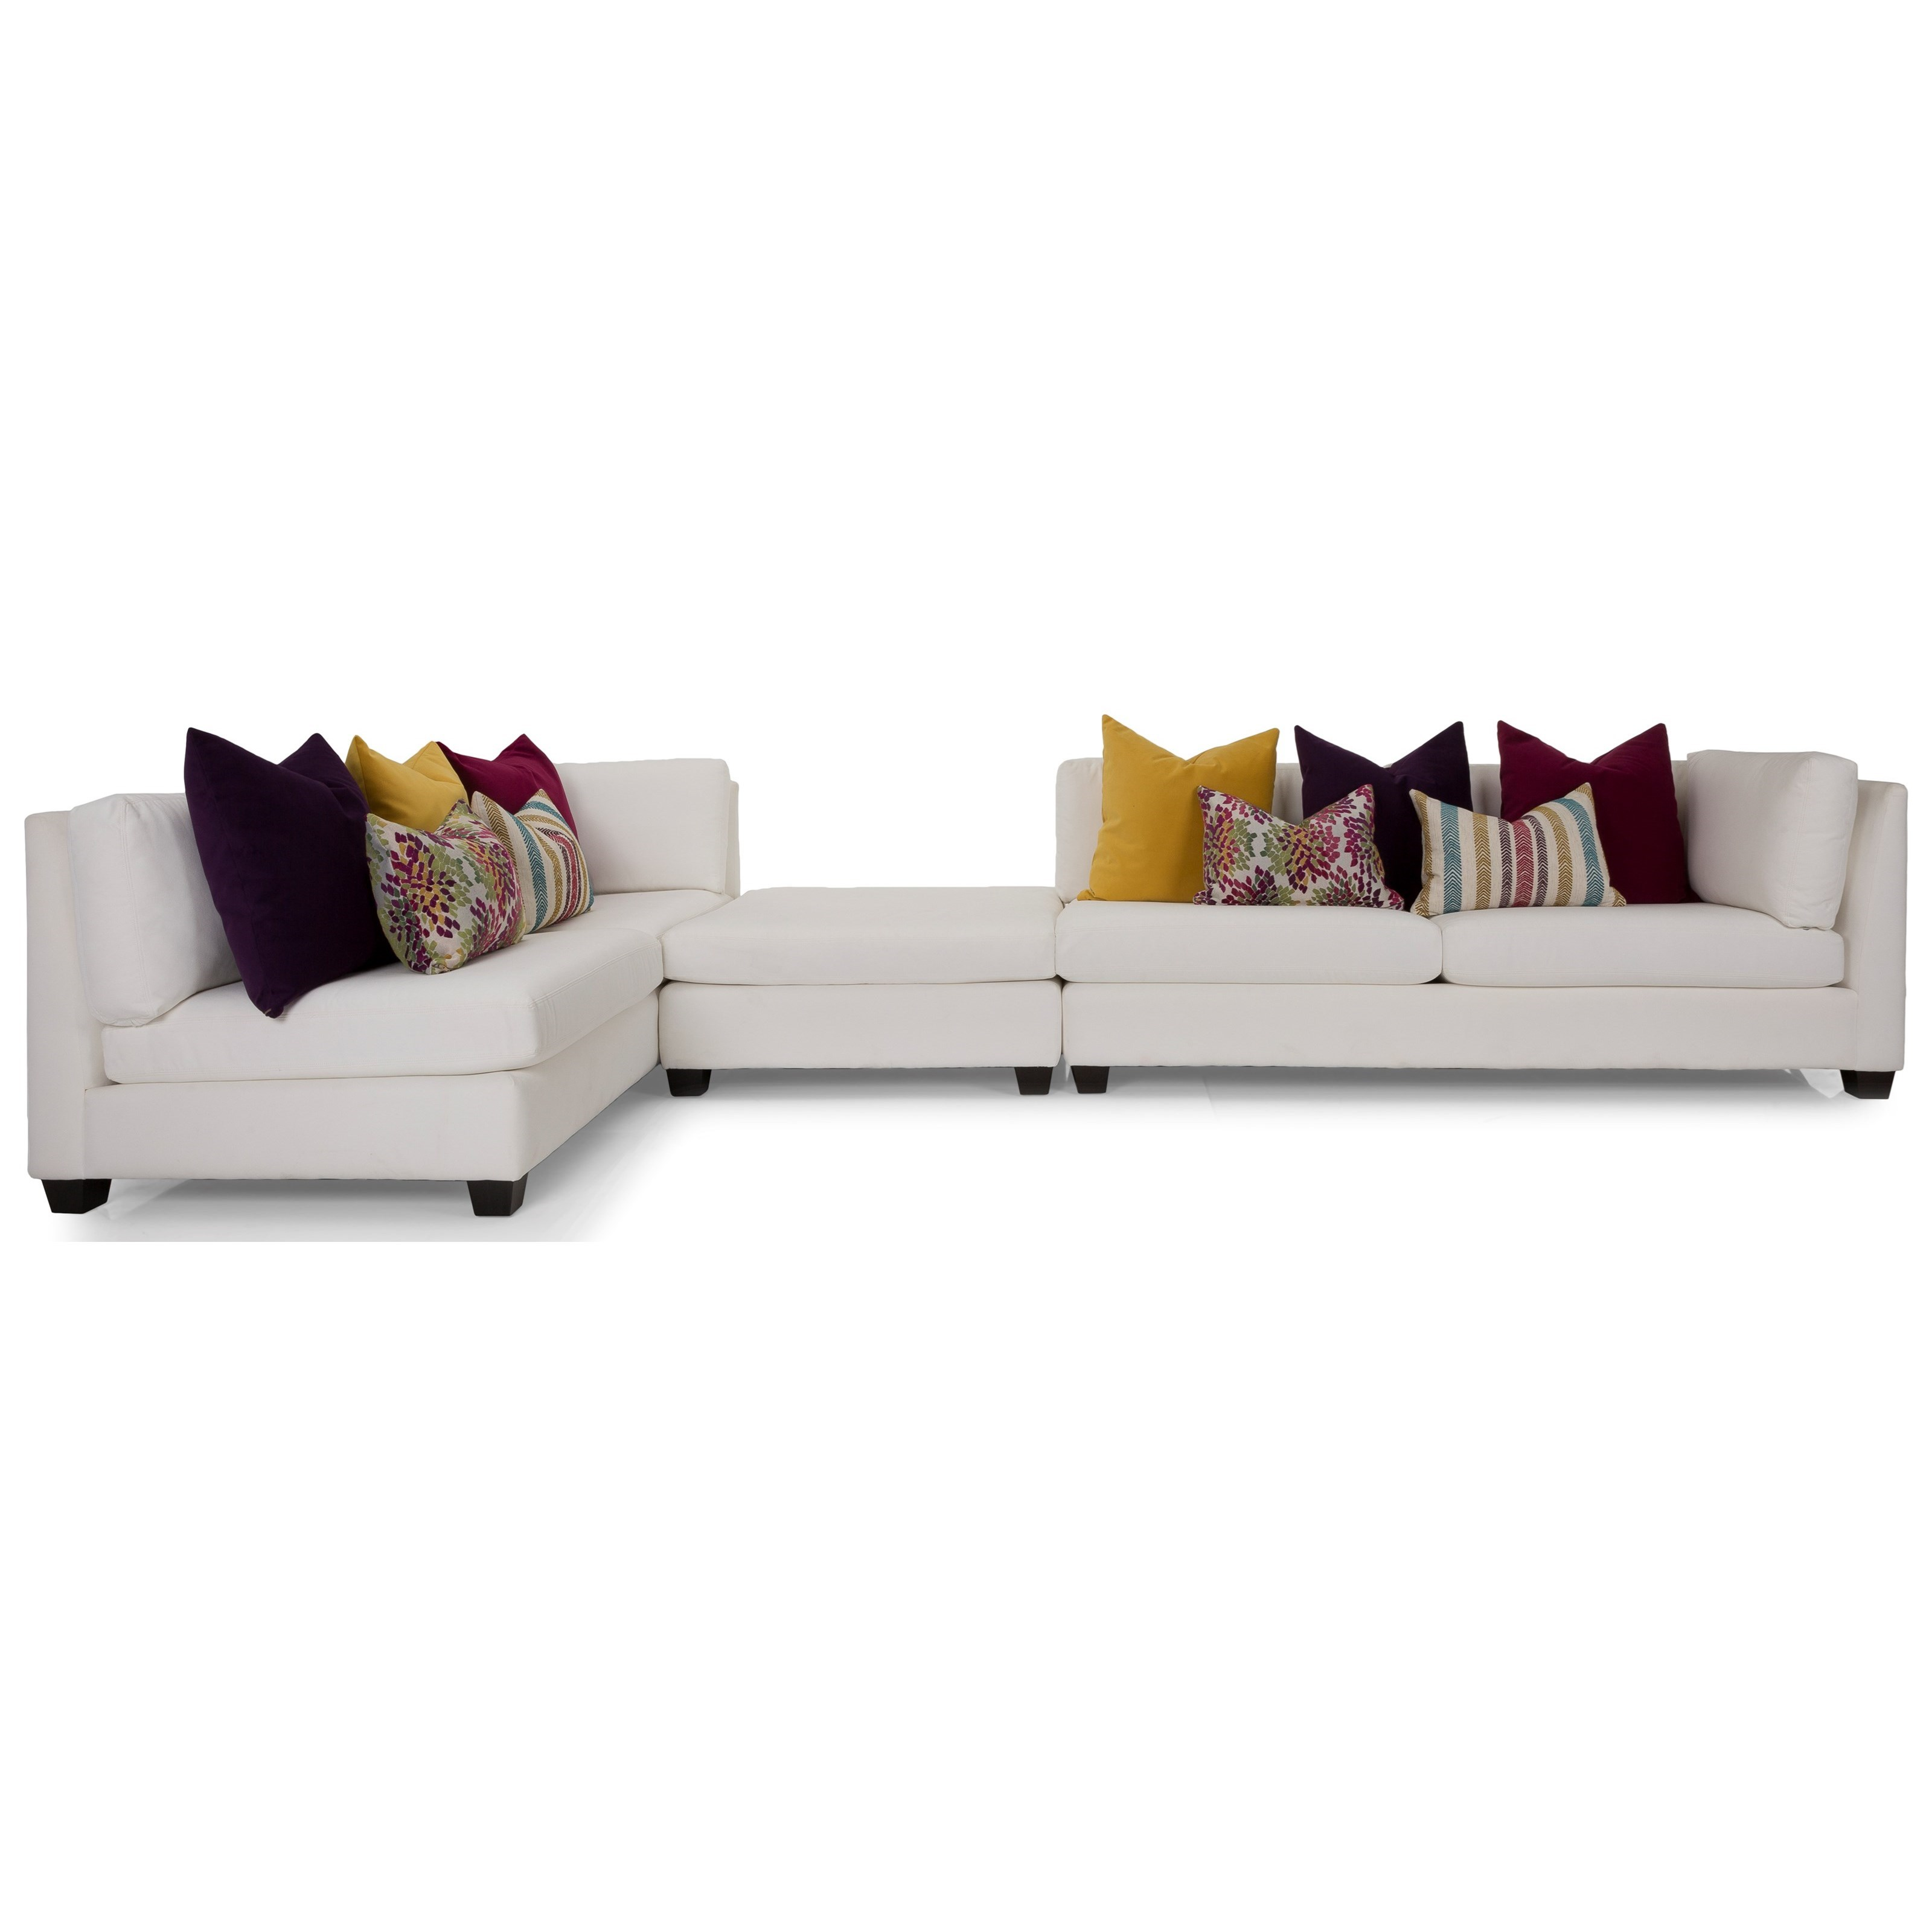 2875 Sectional Sofa by Decor-Rest at Wayside Furniture